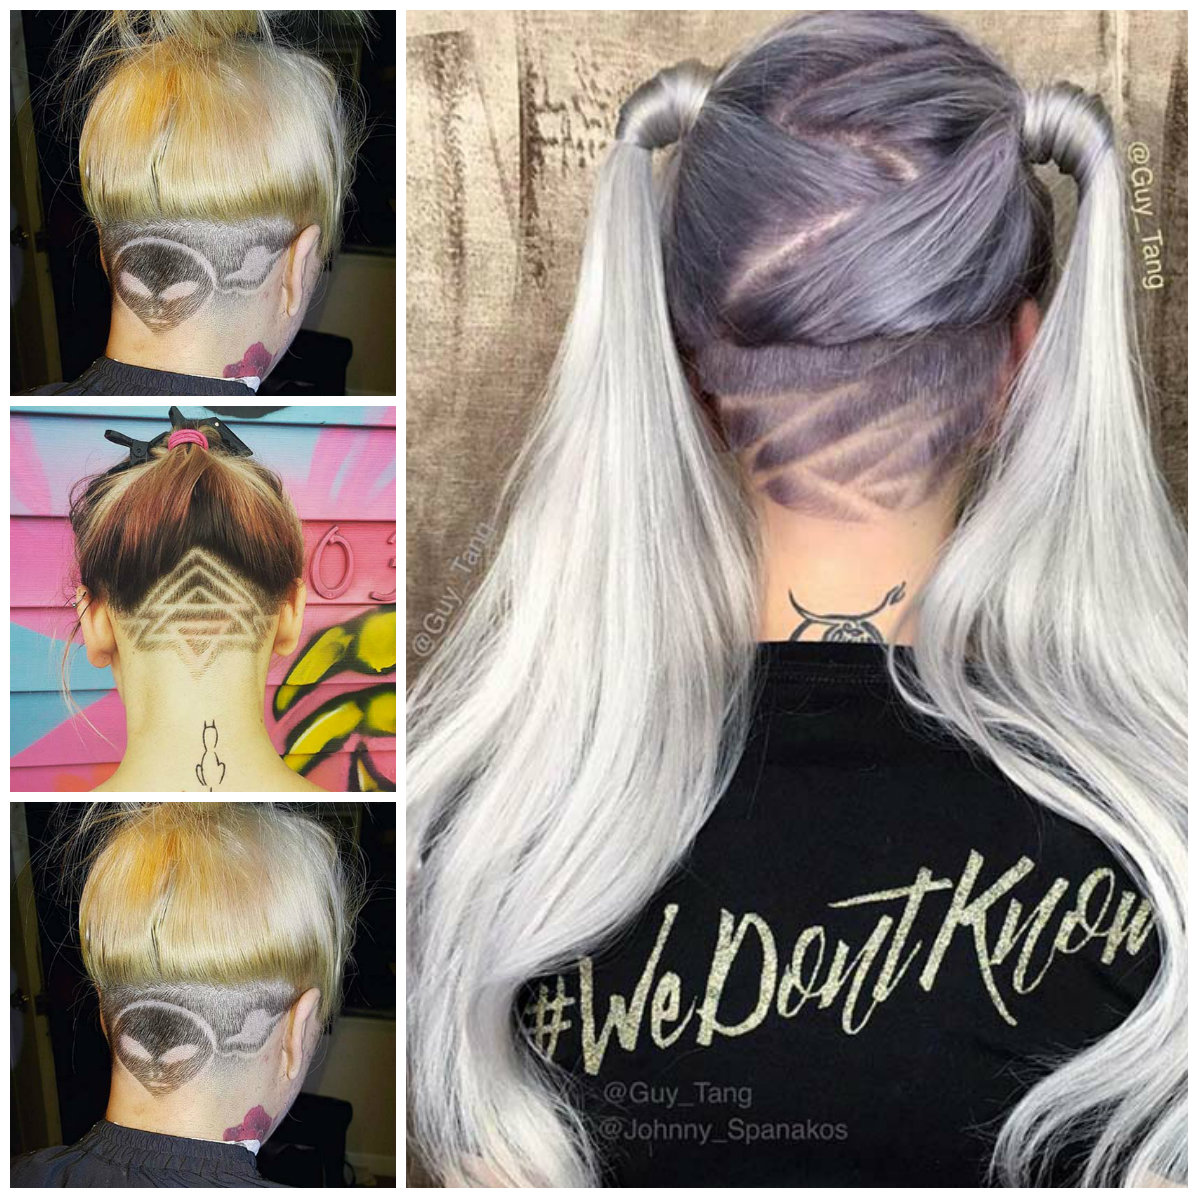 Females' Undercuts with Hair Tattoos for 2017